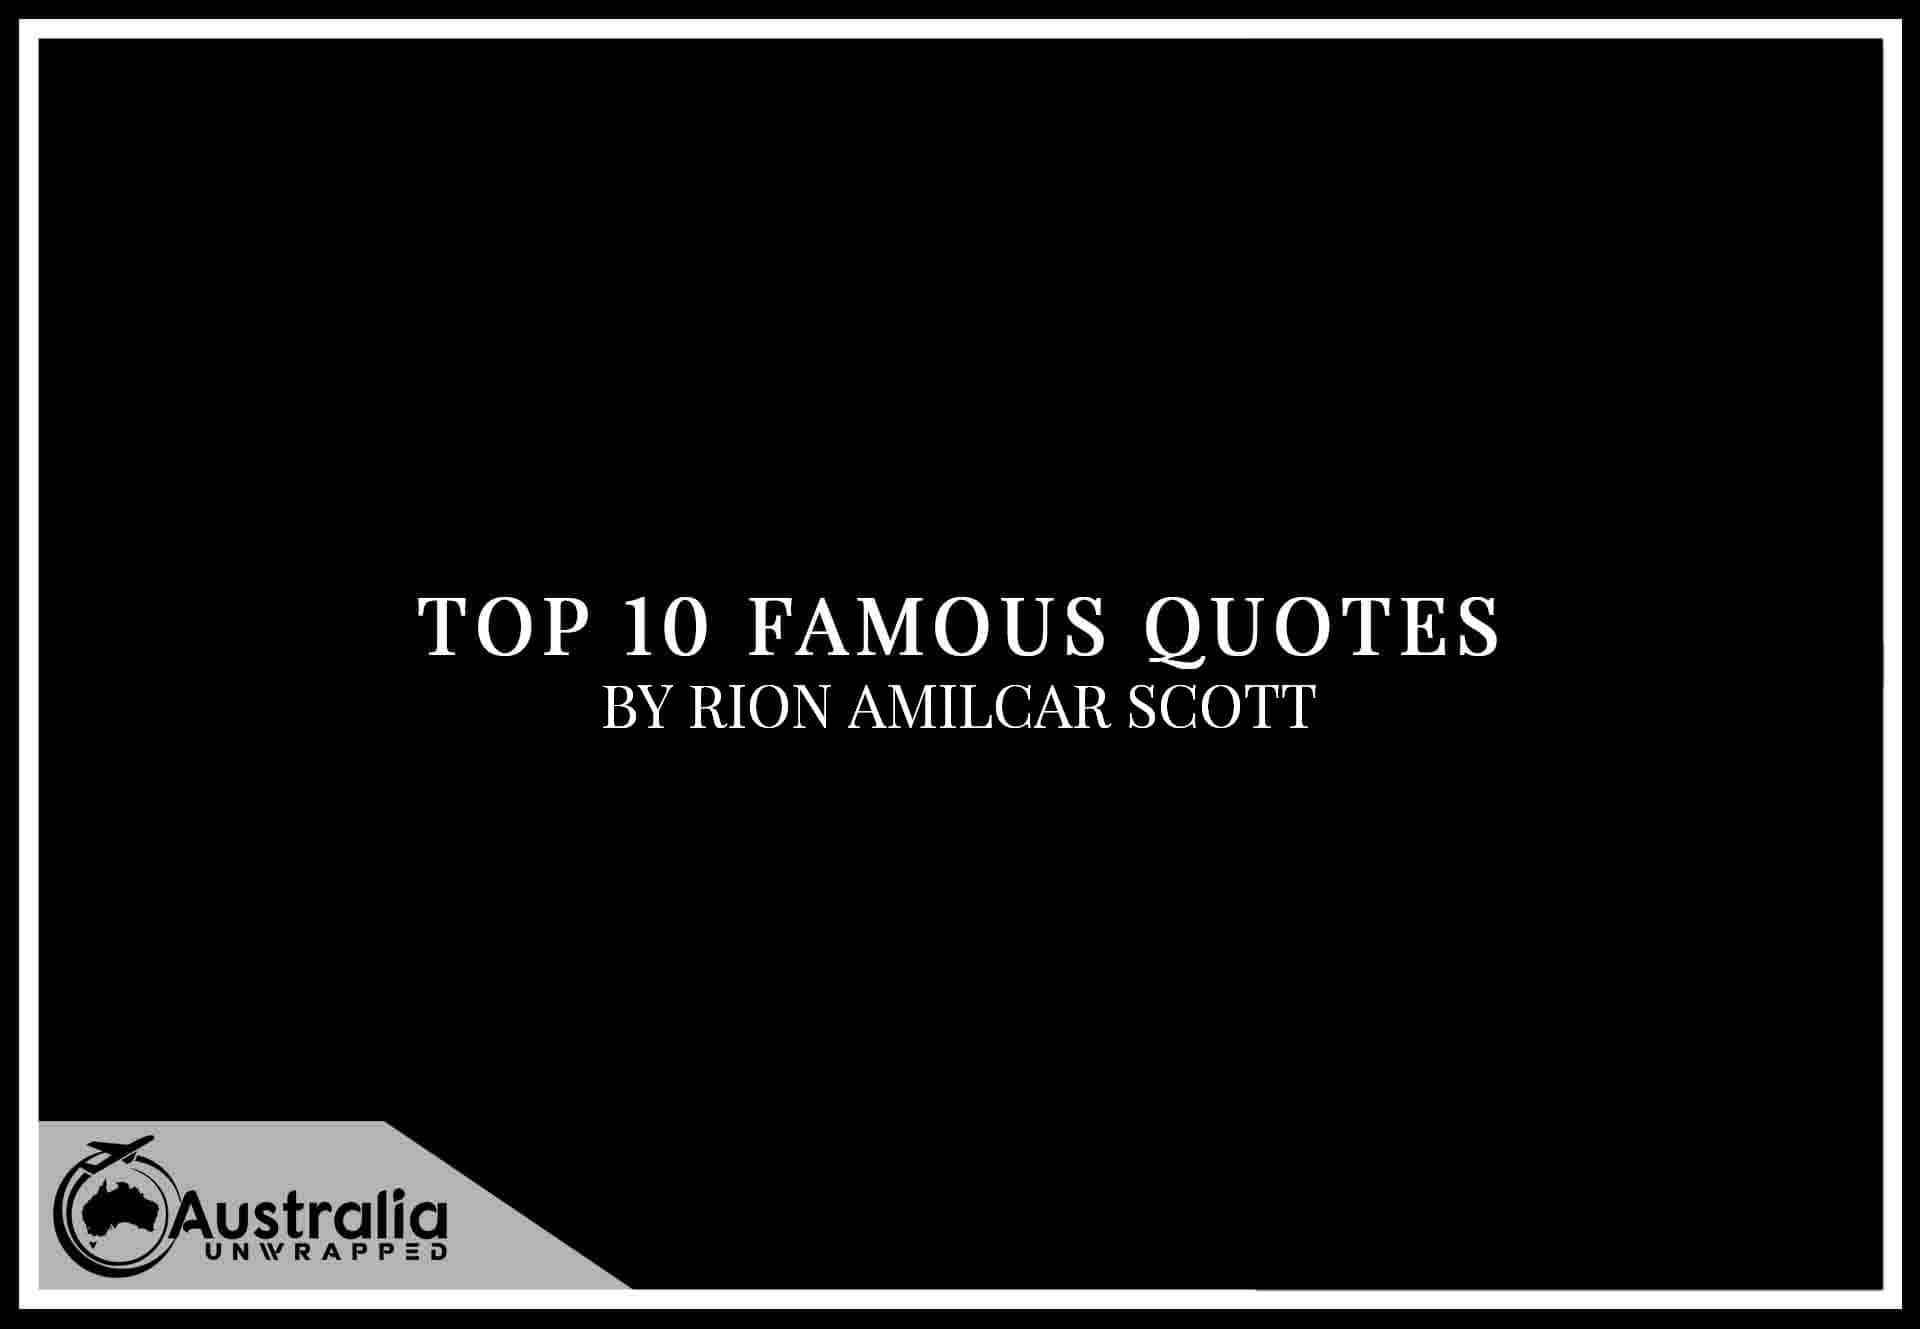 Top 10 Famous Quotes by Author Rion Amilcar Scott